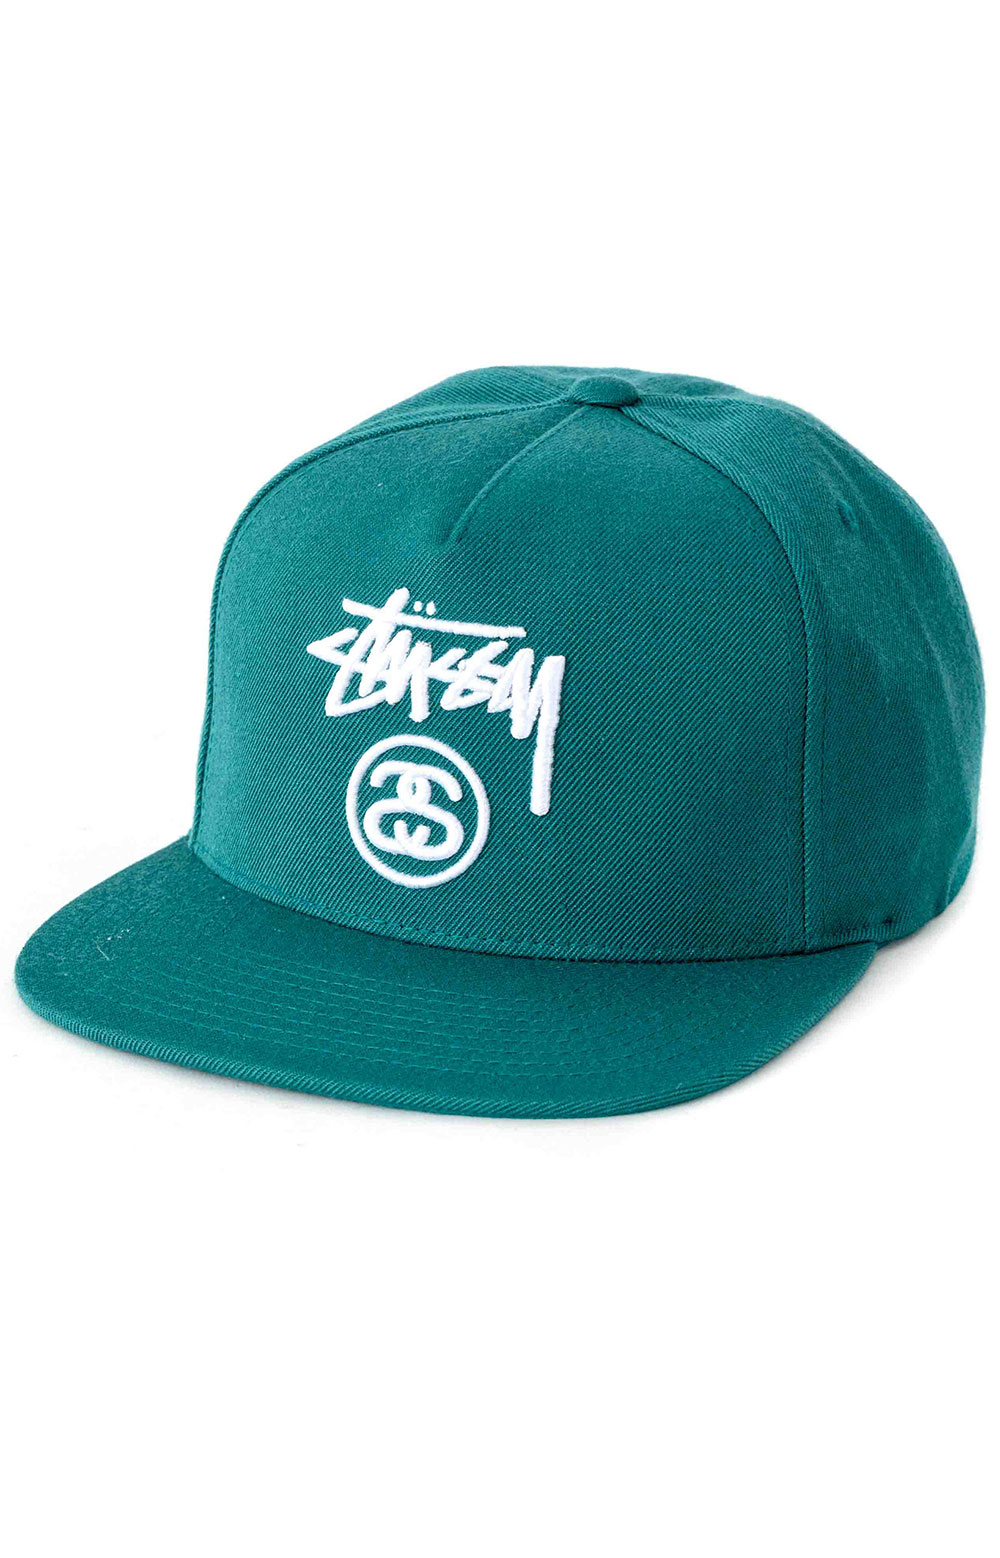 Stock Lock Snap-Back Hat - Green